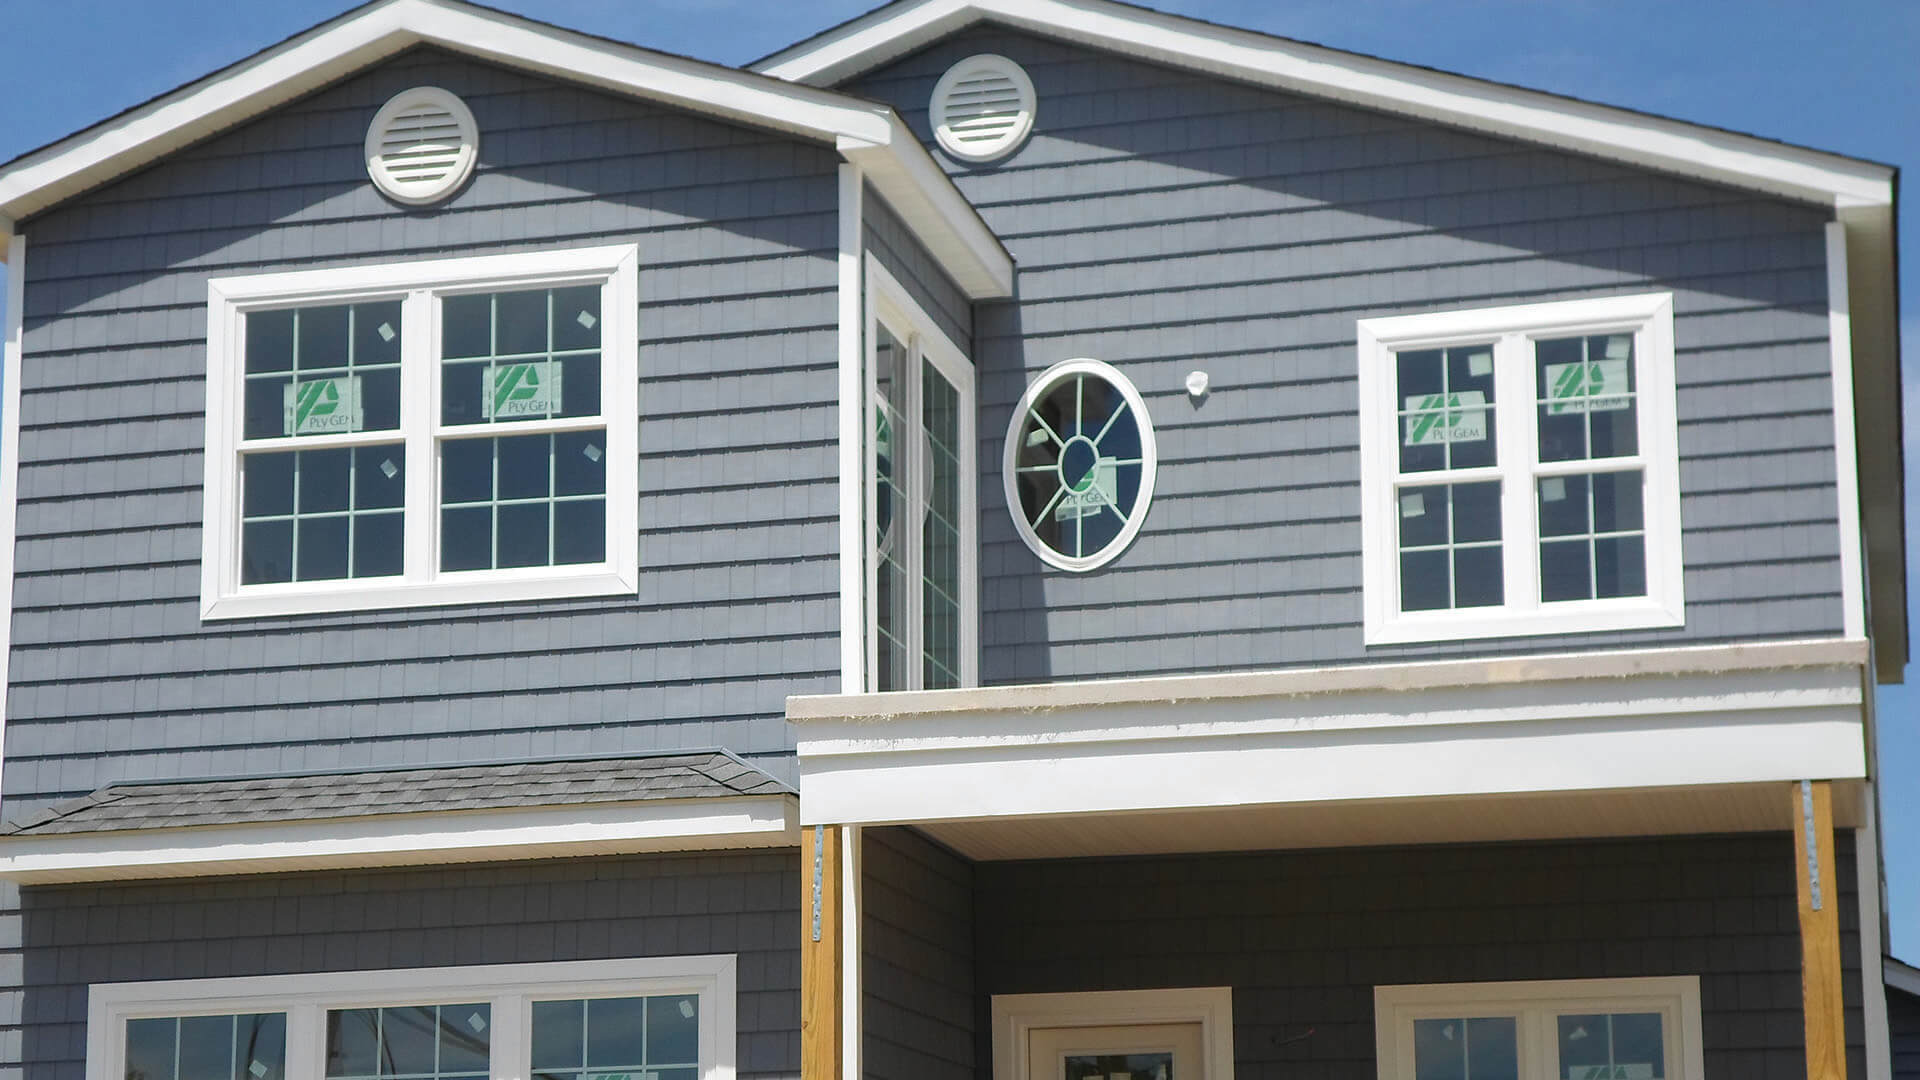 Middletown Siding, Vinyl Siding and Vinyl Window Installation